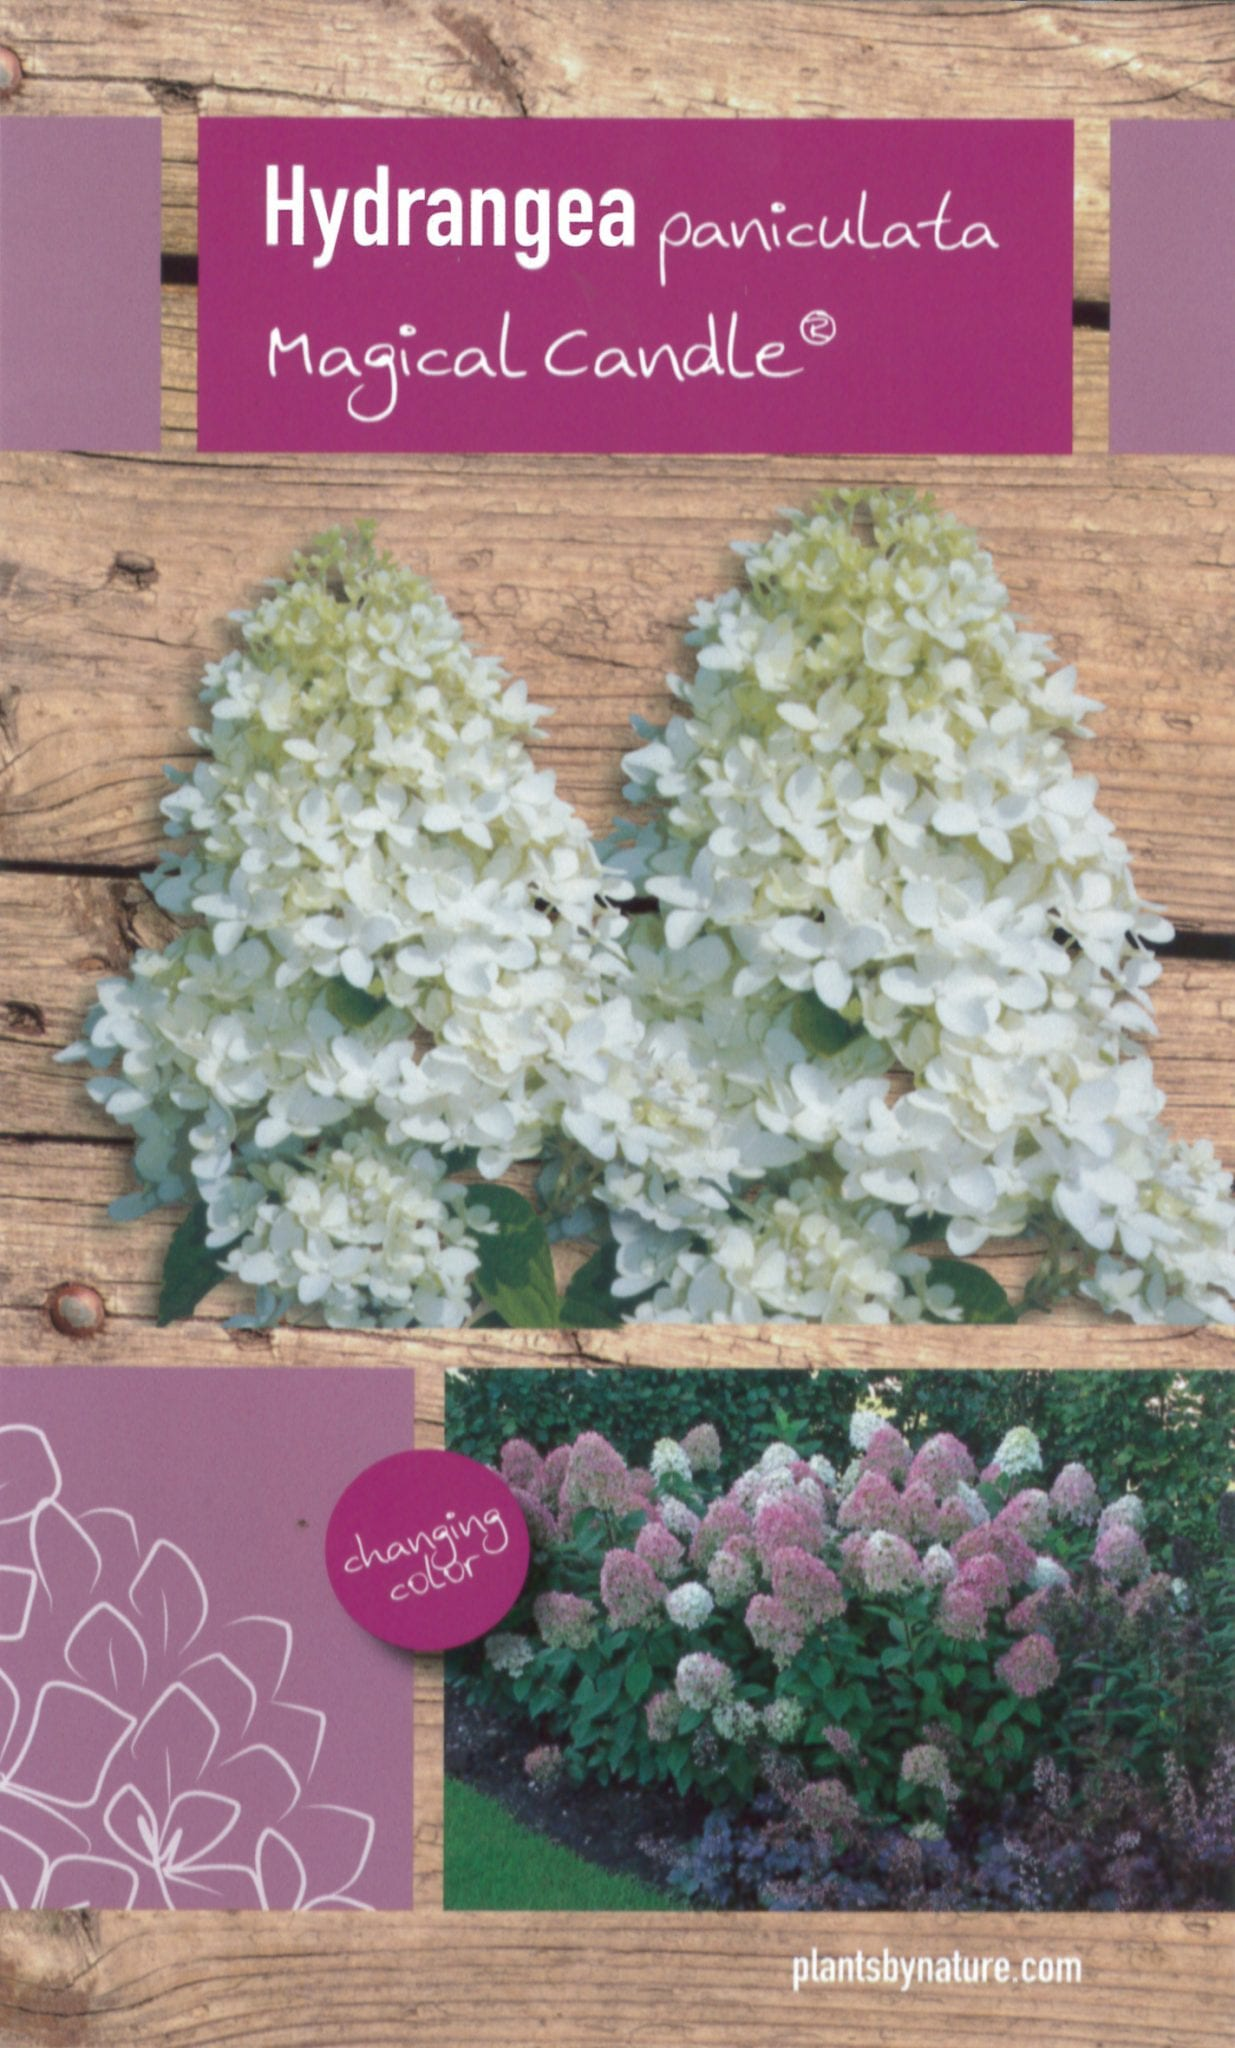 Hydrangea paniculata 'Magical Candle' etiket voorzijde | Plants By Nature - gespecialiseerd in hydrangea